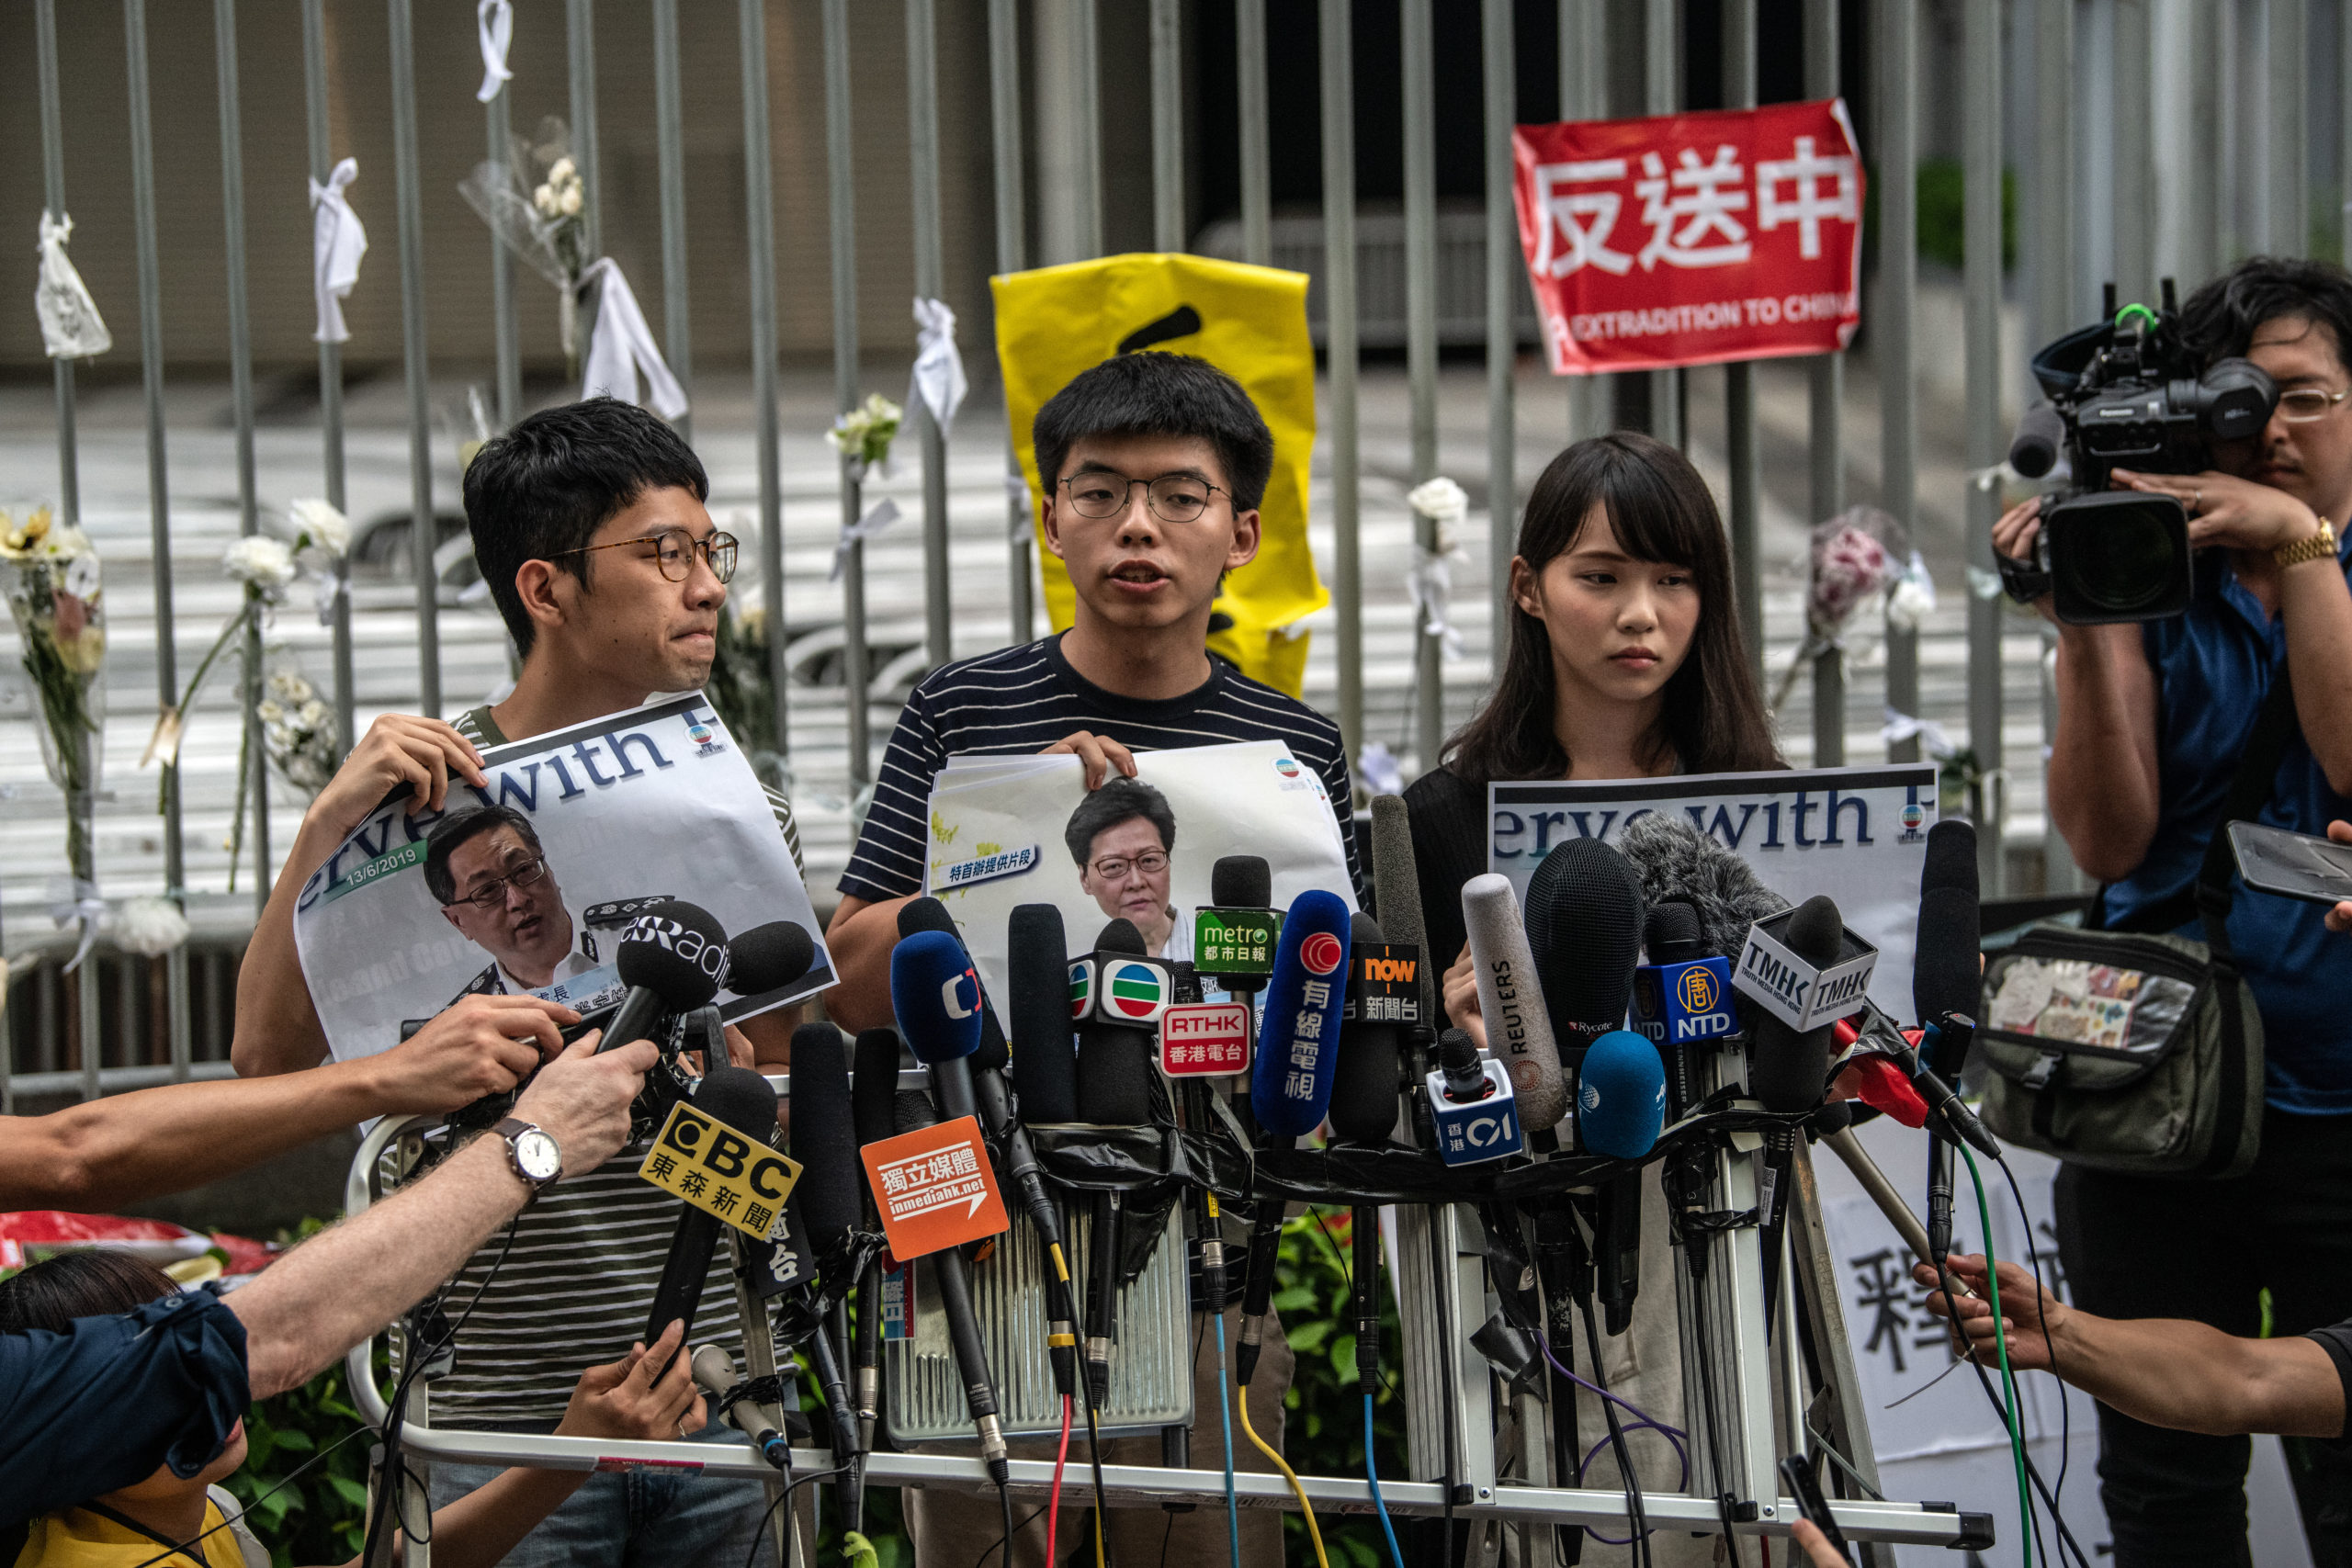 Pro-democracy activist Joshua Wong (C) speaks to members of the media outside the Legislative Council building following a press conference by Hong Kong Chief Executive Carrie Lam on June 18, 2019 in Hong Kong.